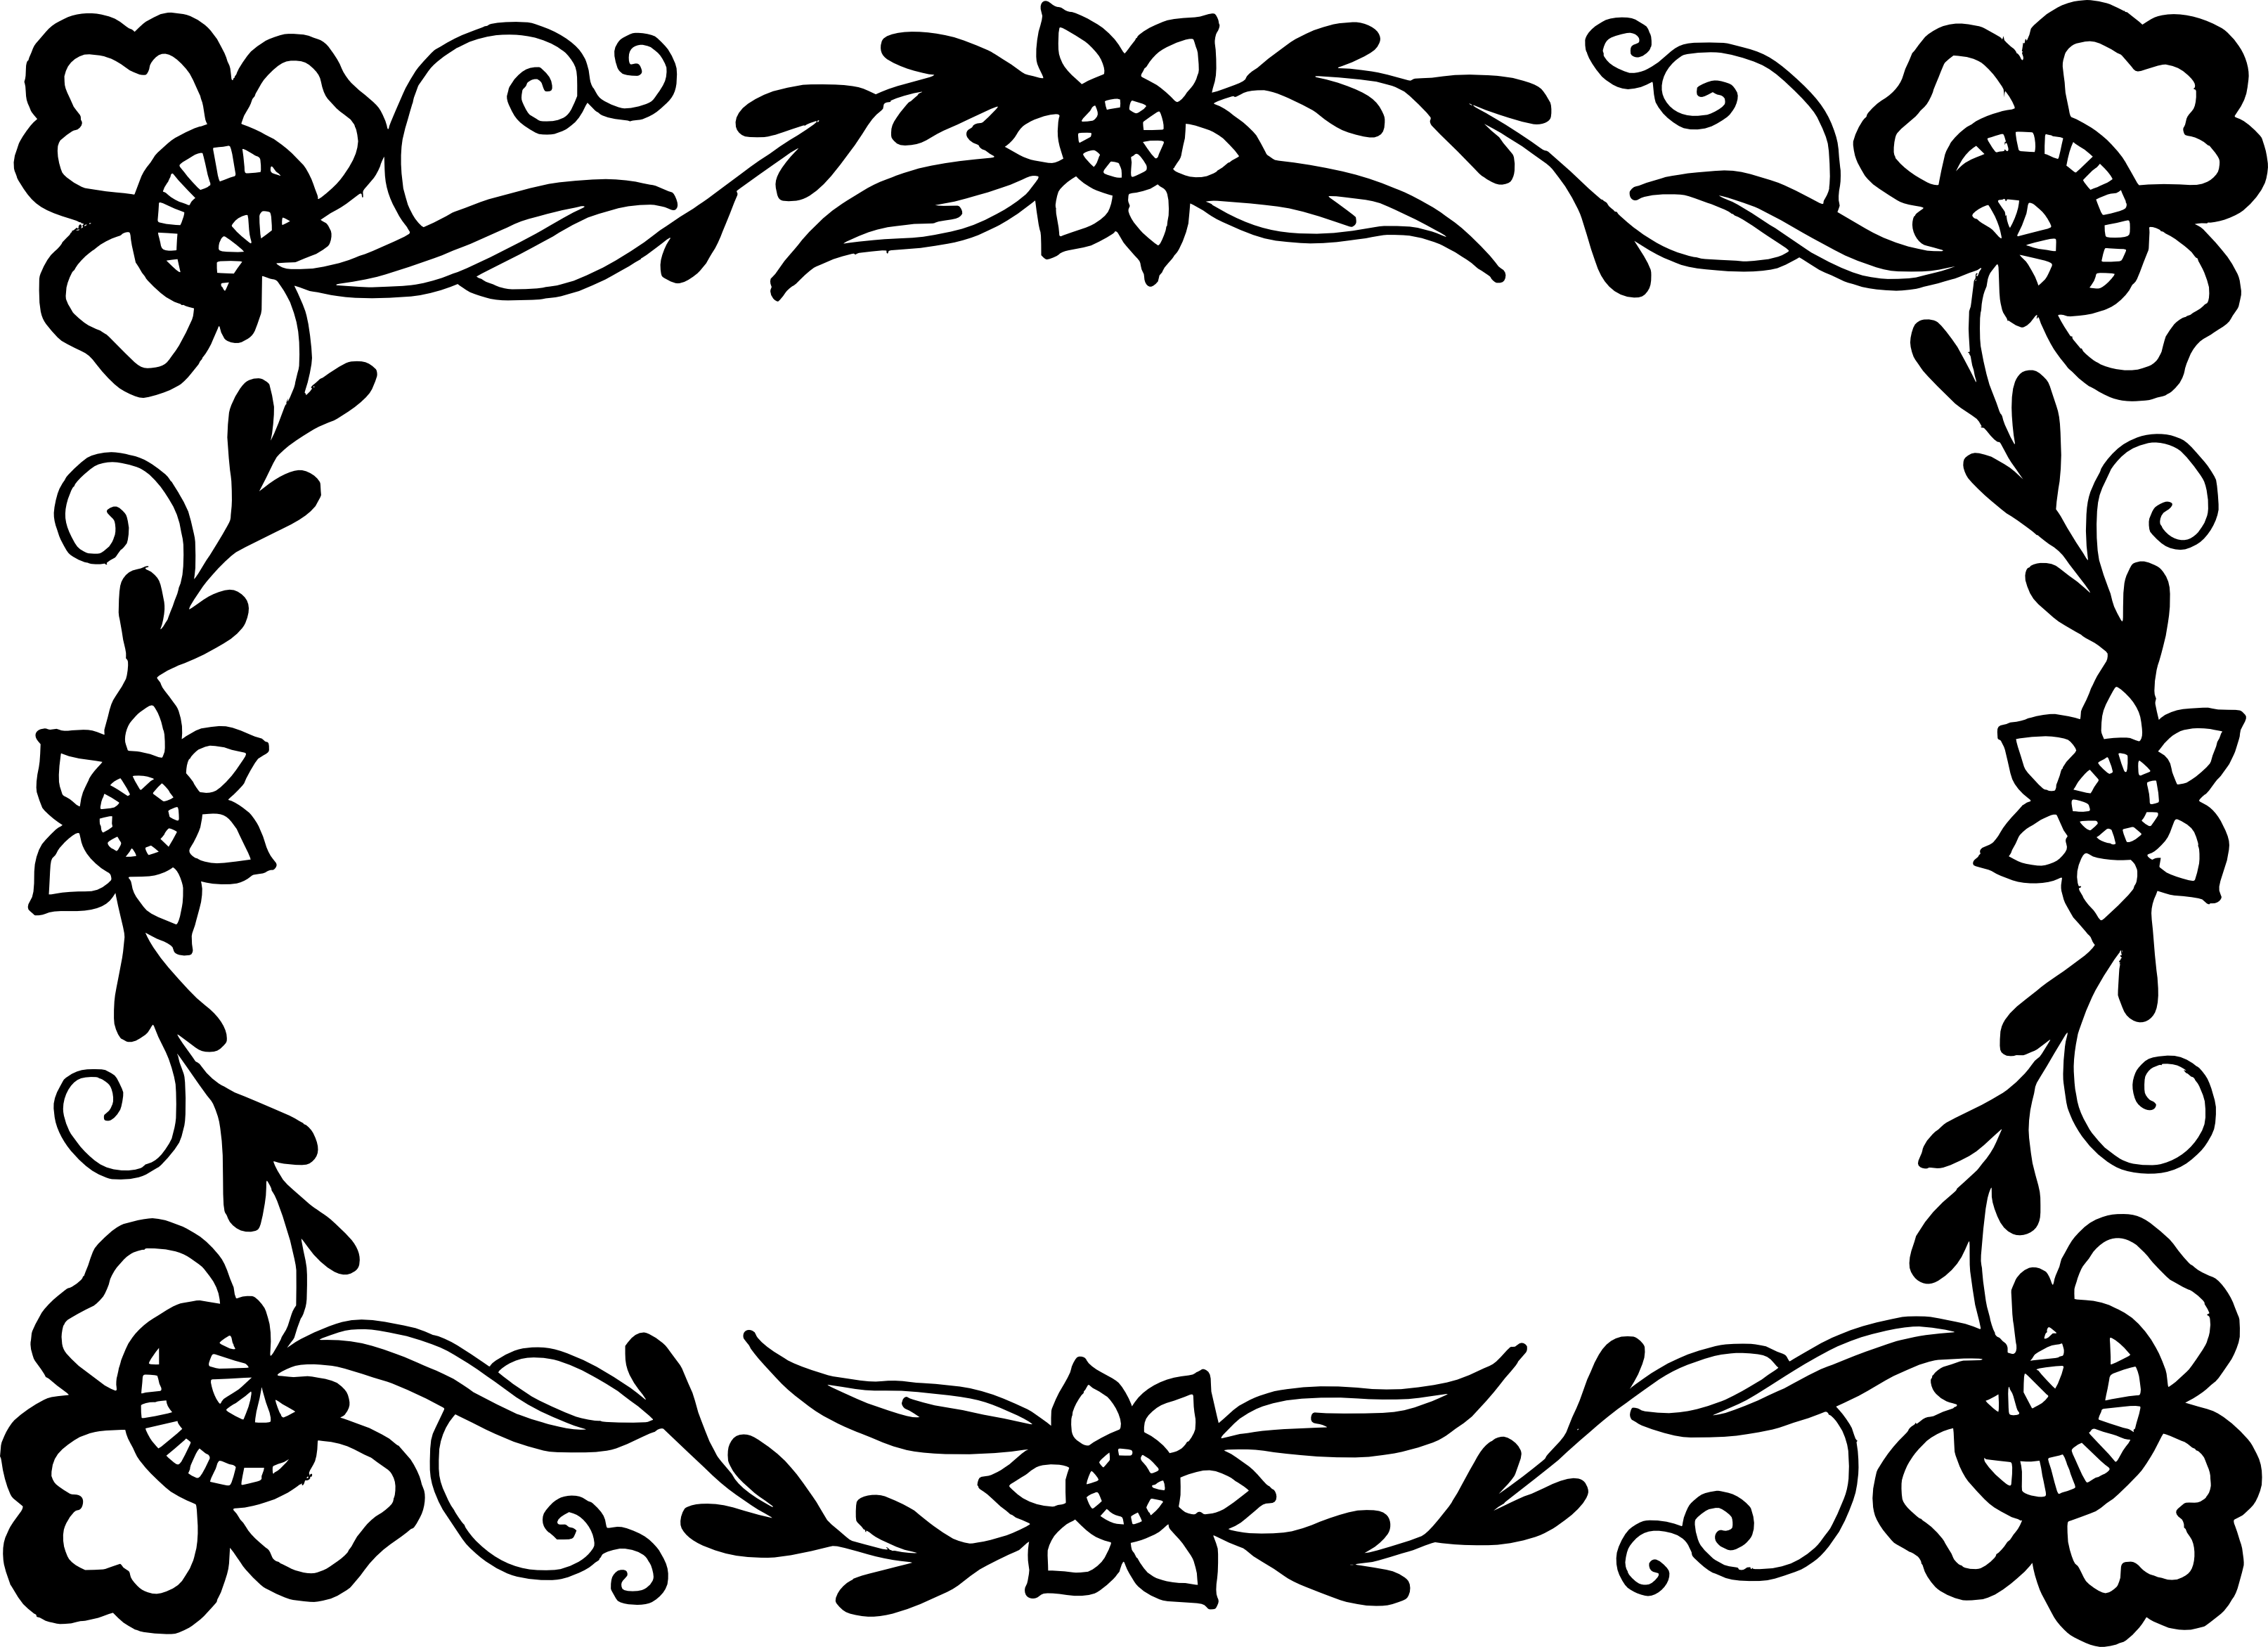 Free Download Png And Vector: 9 Rectangle Flower Frame Vector (PNG Transparent, SVG) Vol